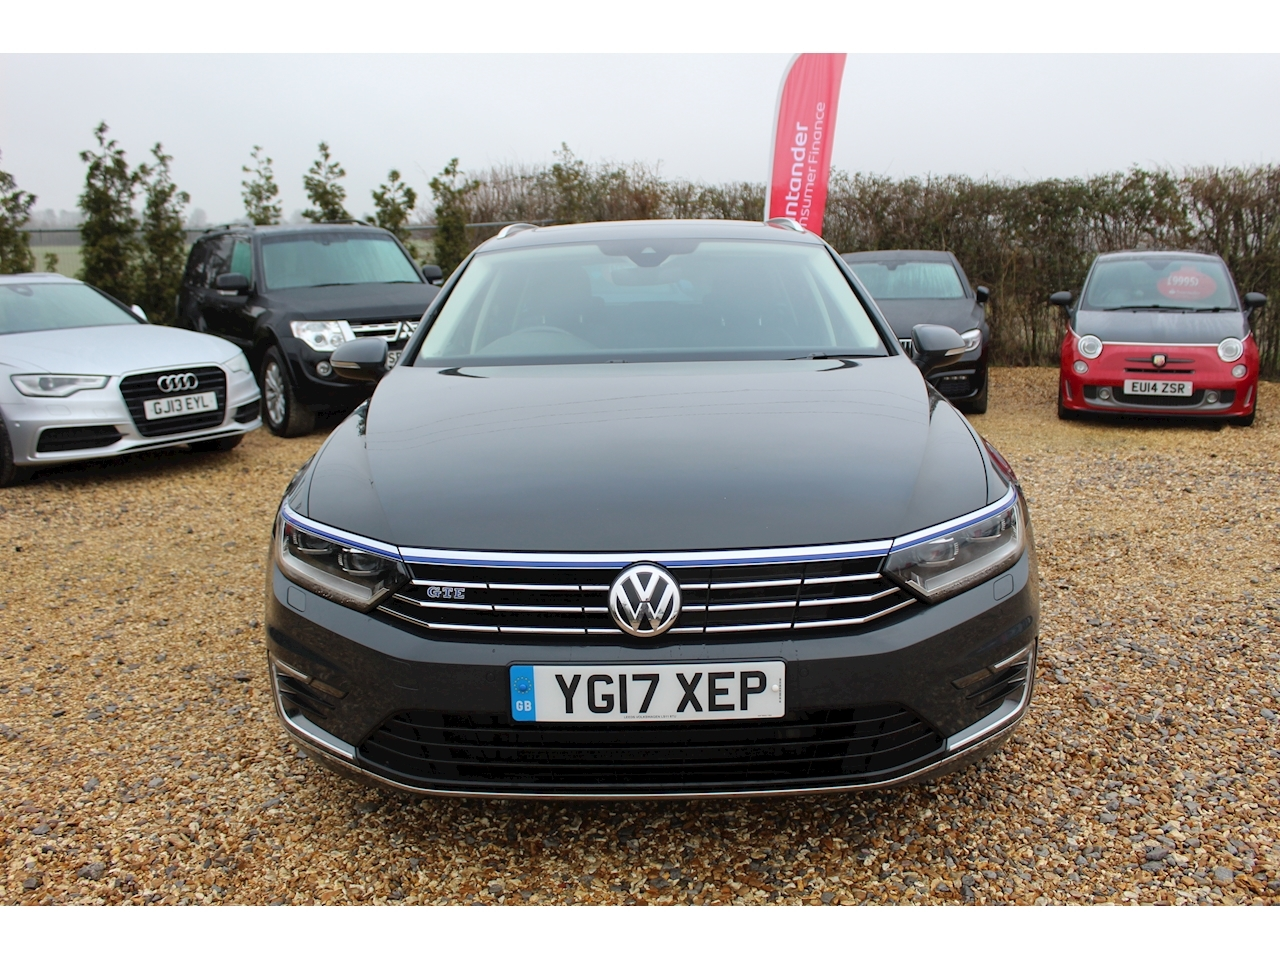 Volkswagen Passat Gte Dsg Estate 1.4 Semi Auto Petrol/Electric